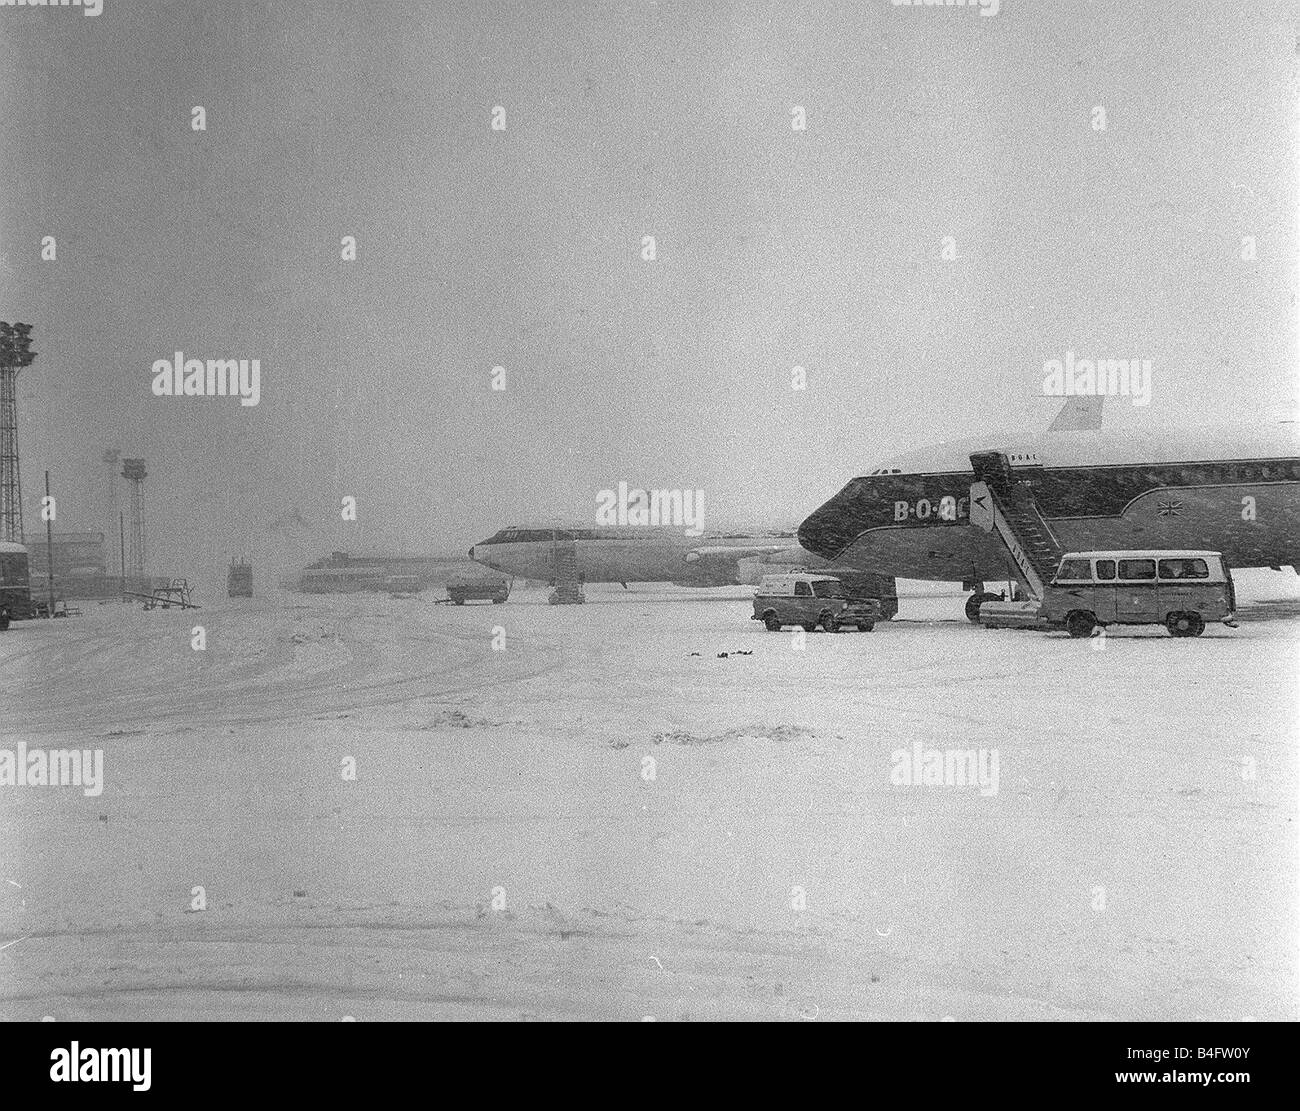 Aircraft parked at Heathrow Airport during a blizard in March 1965 - Stock Image